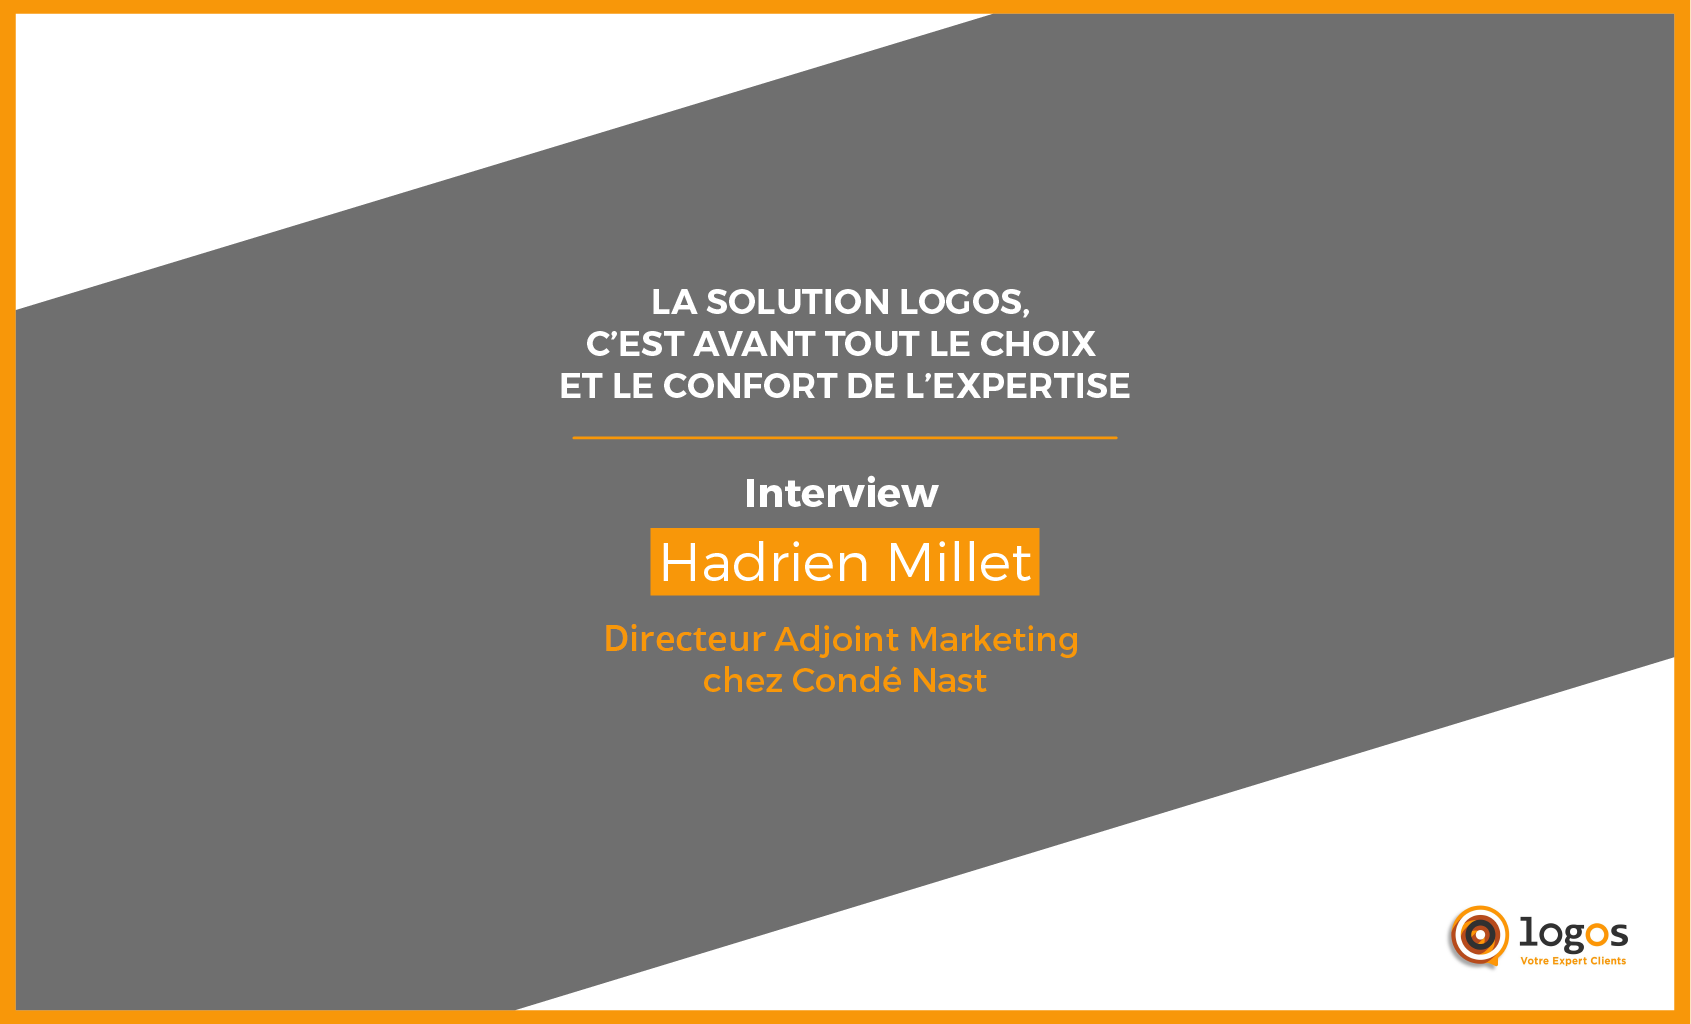 interview-hadrien-millet-logos